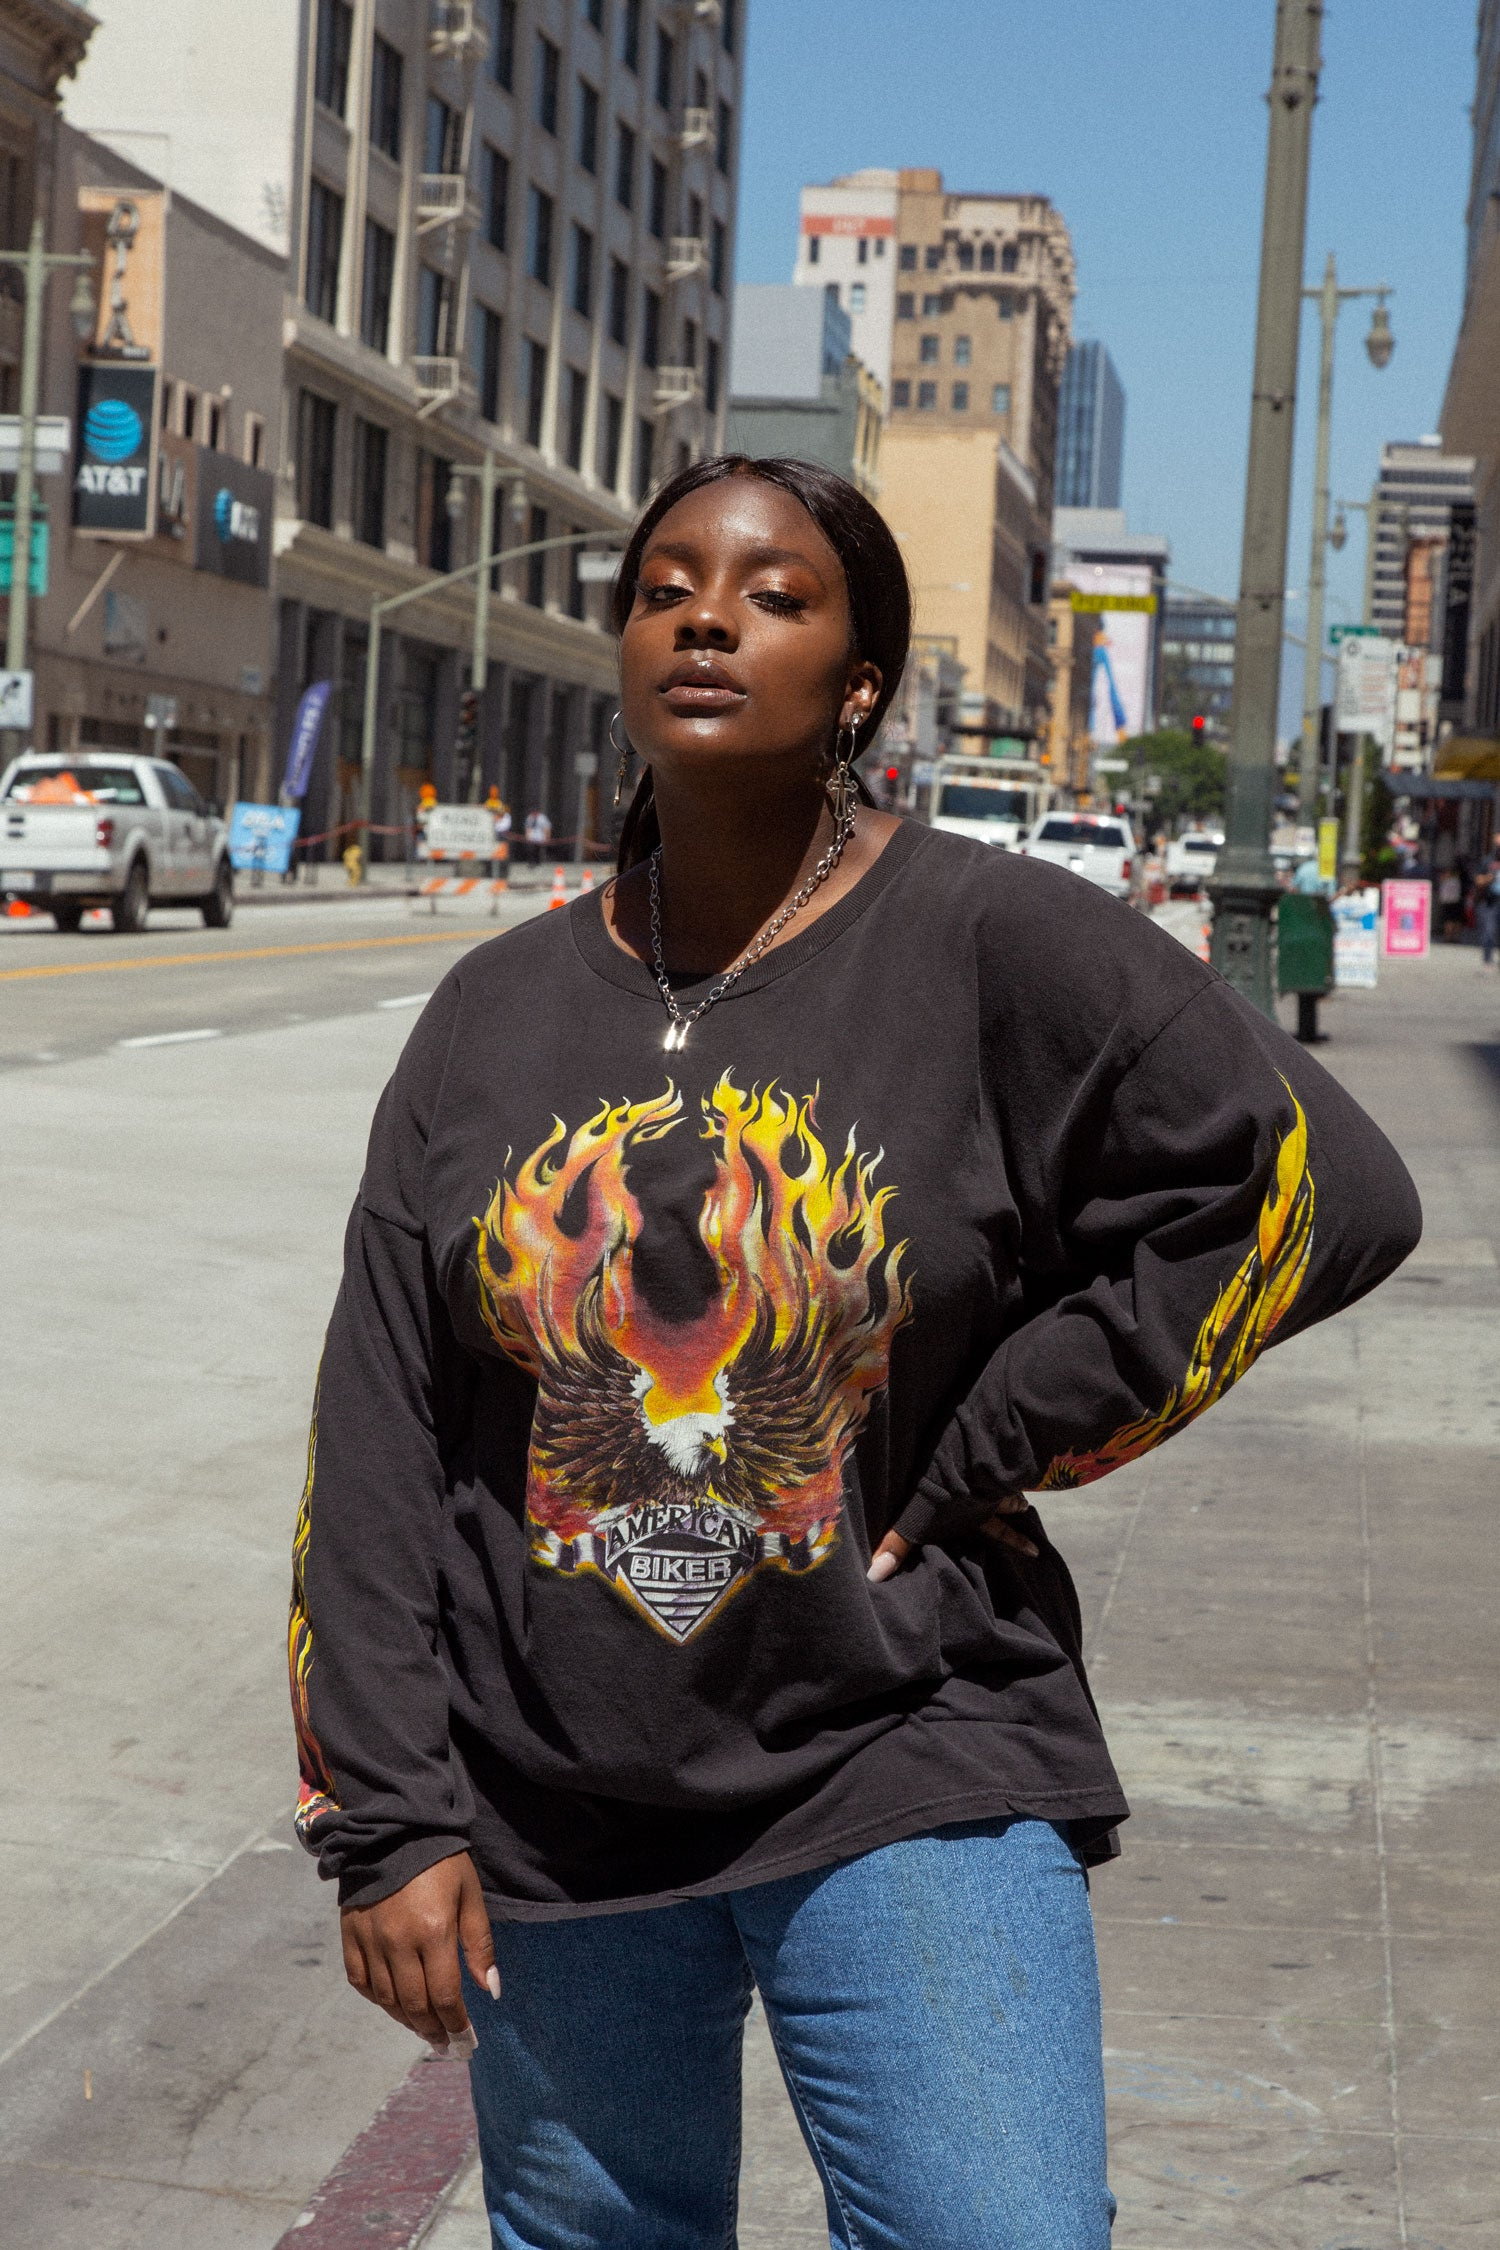 Plus size female model standing in city, wearing vintage 90s flame t shirt.